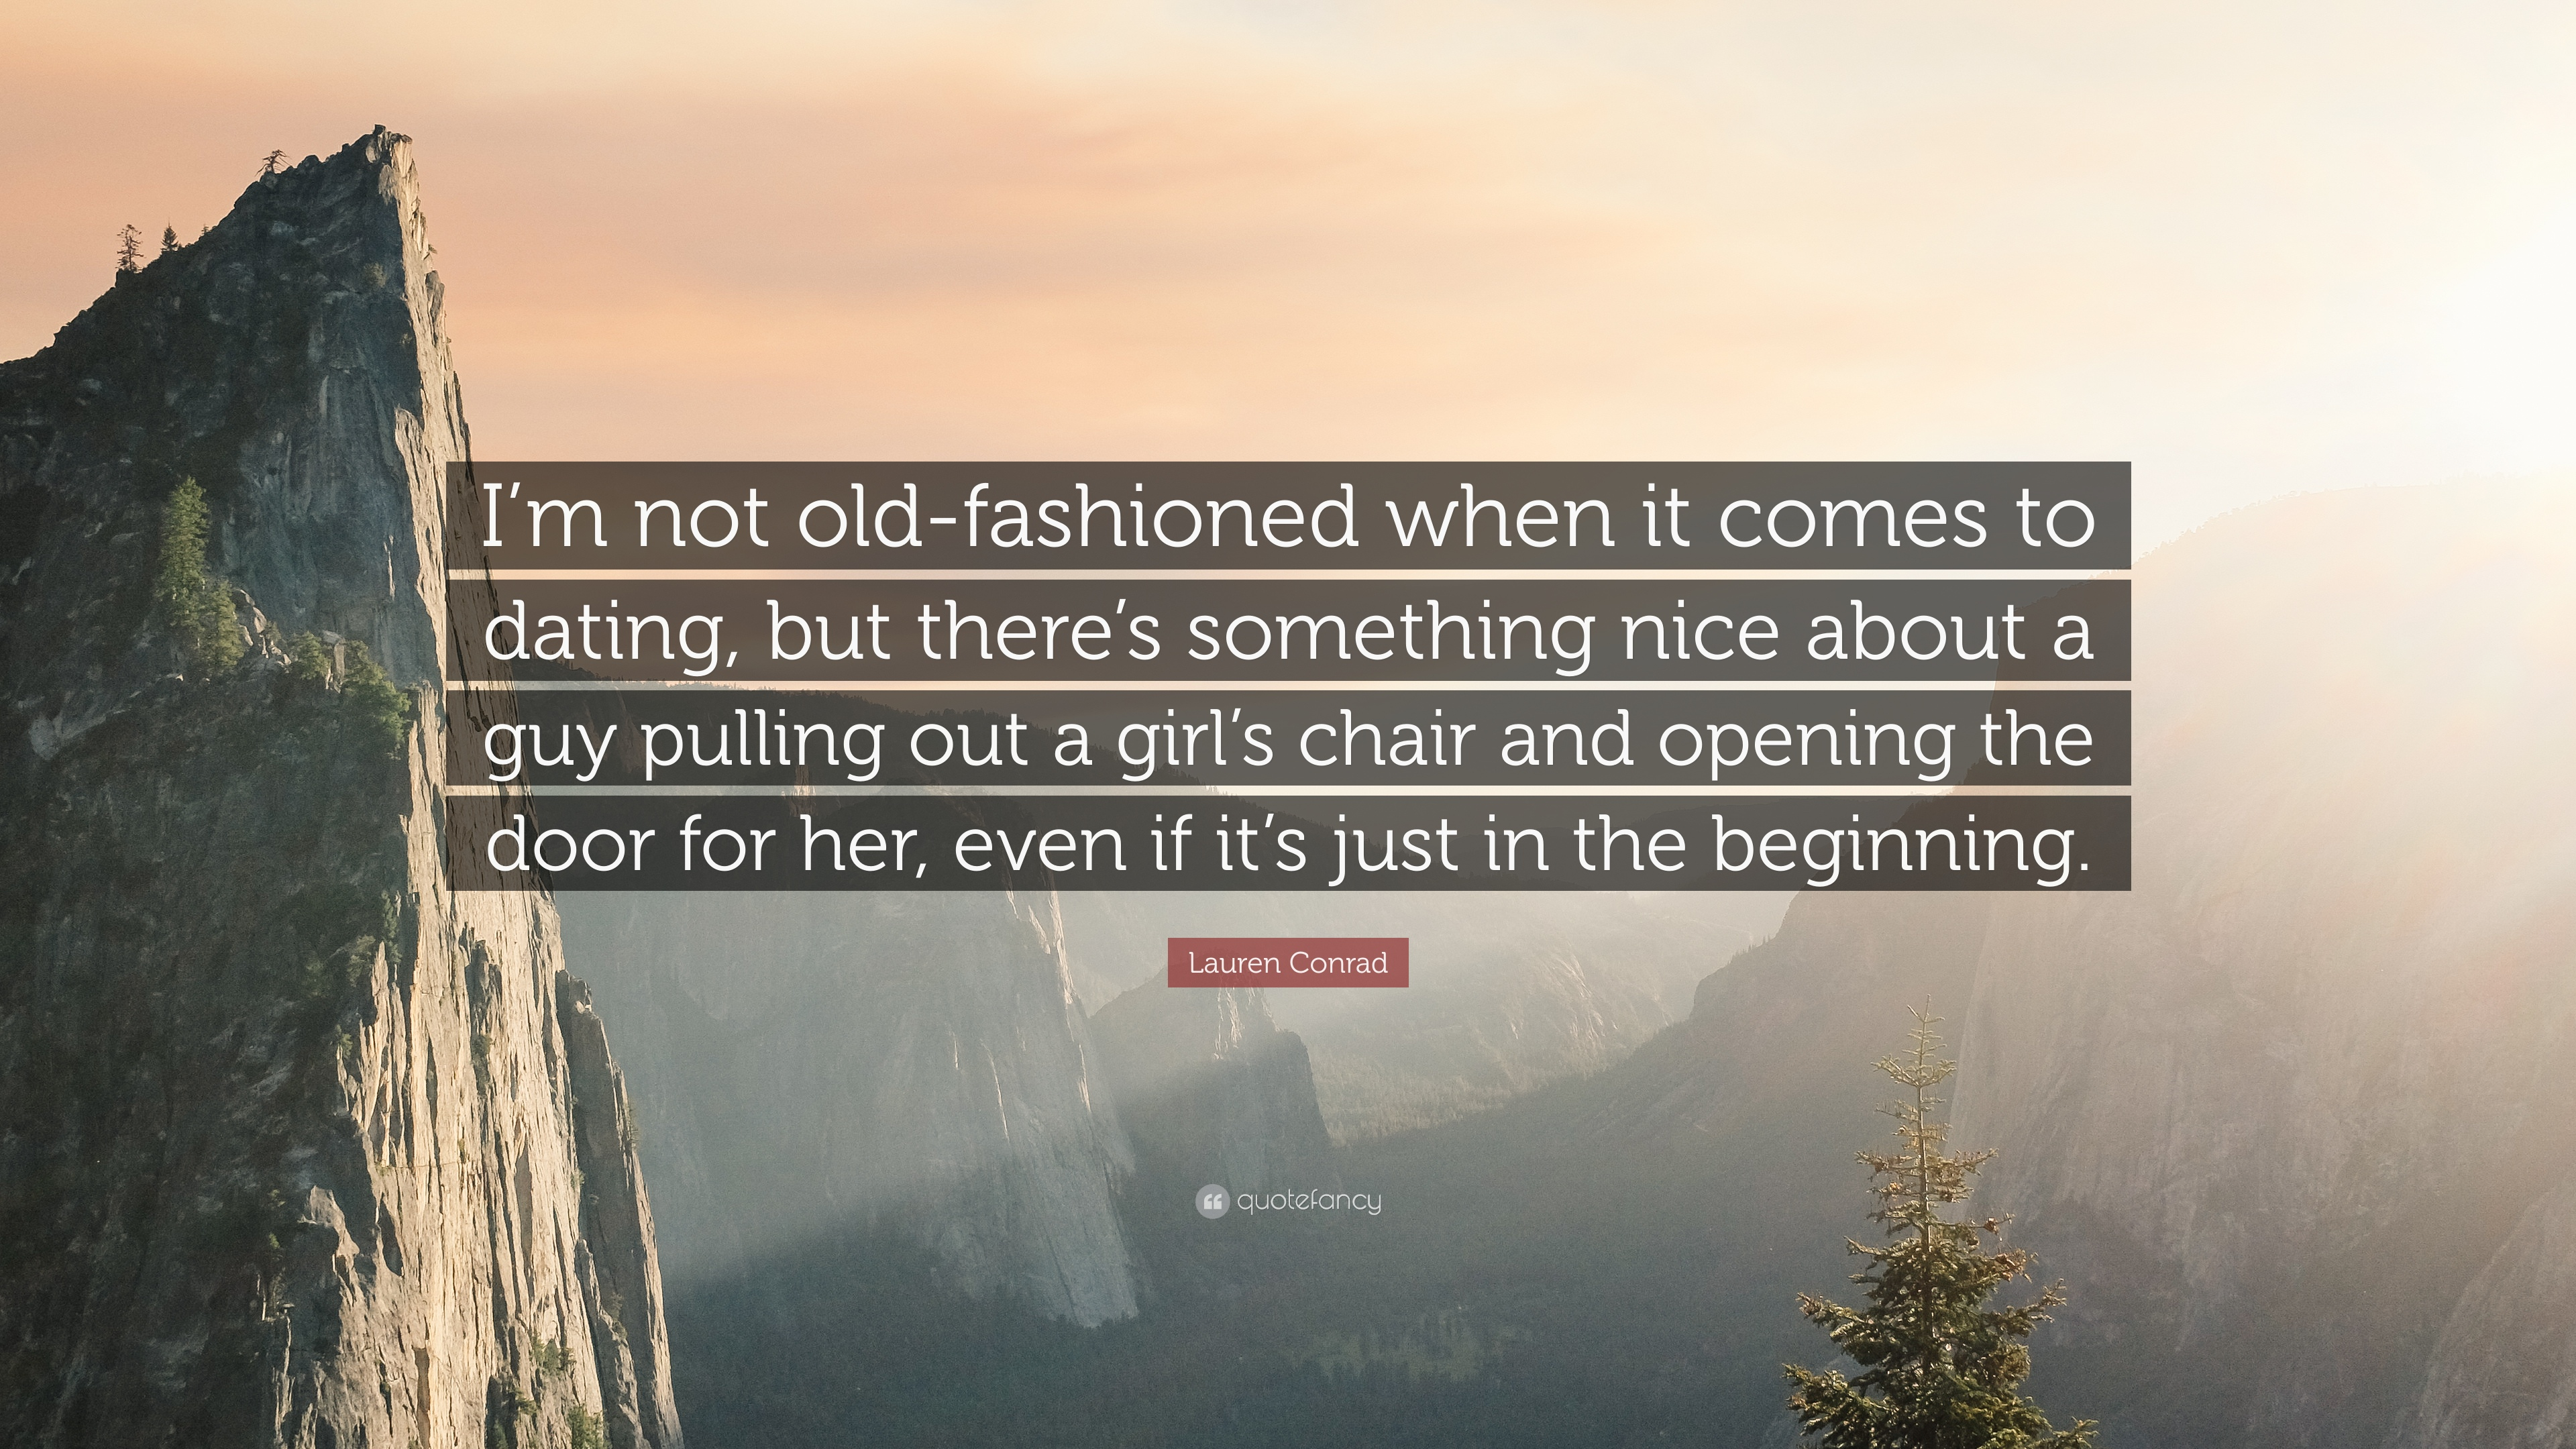 dating old fashioned girl